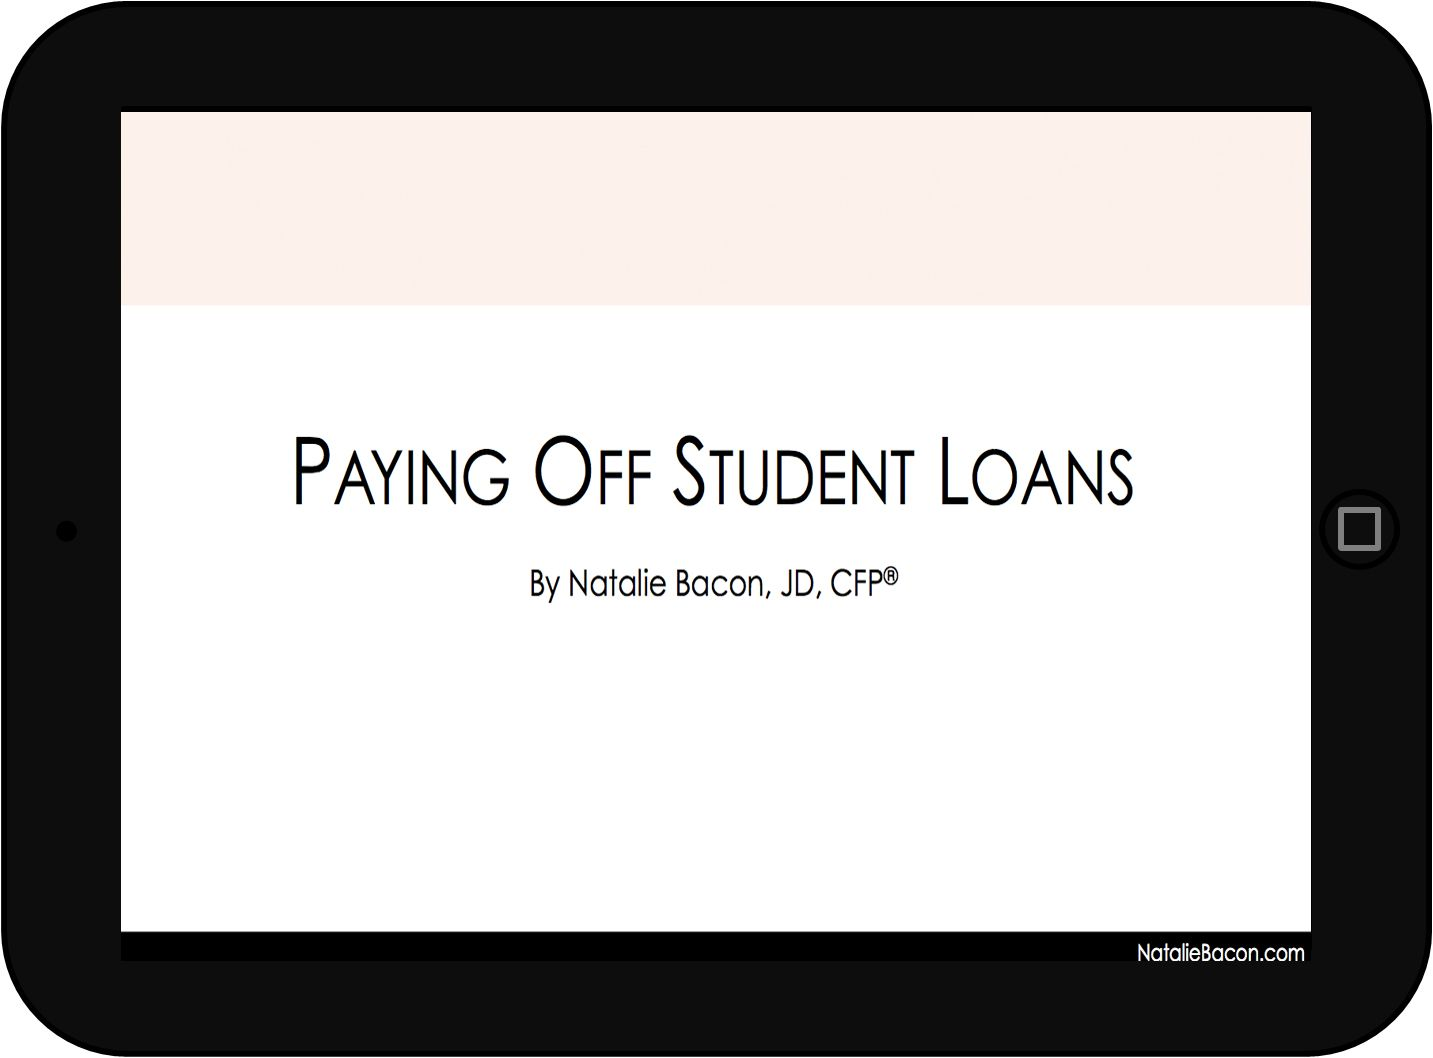 student loan forgiveness for frontline health workers act who qualifies